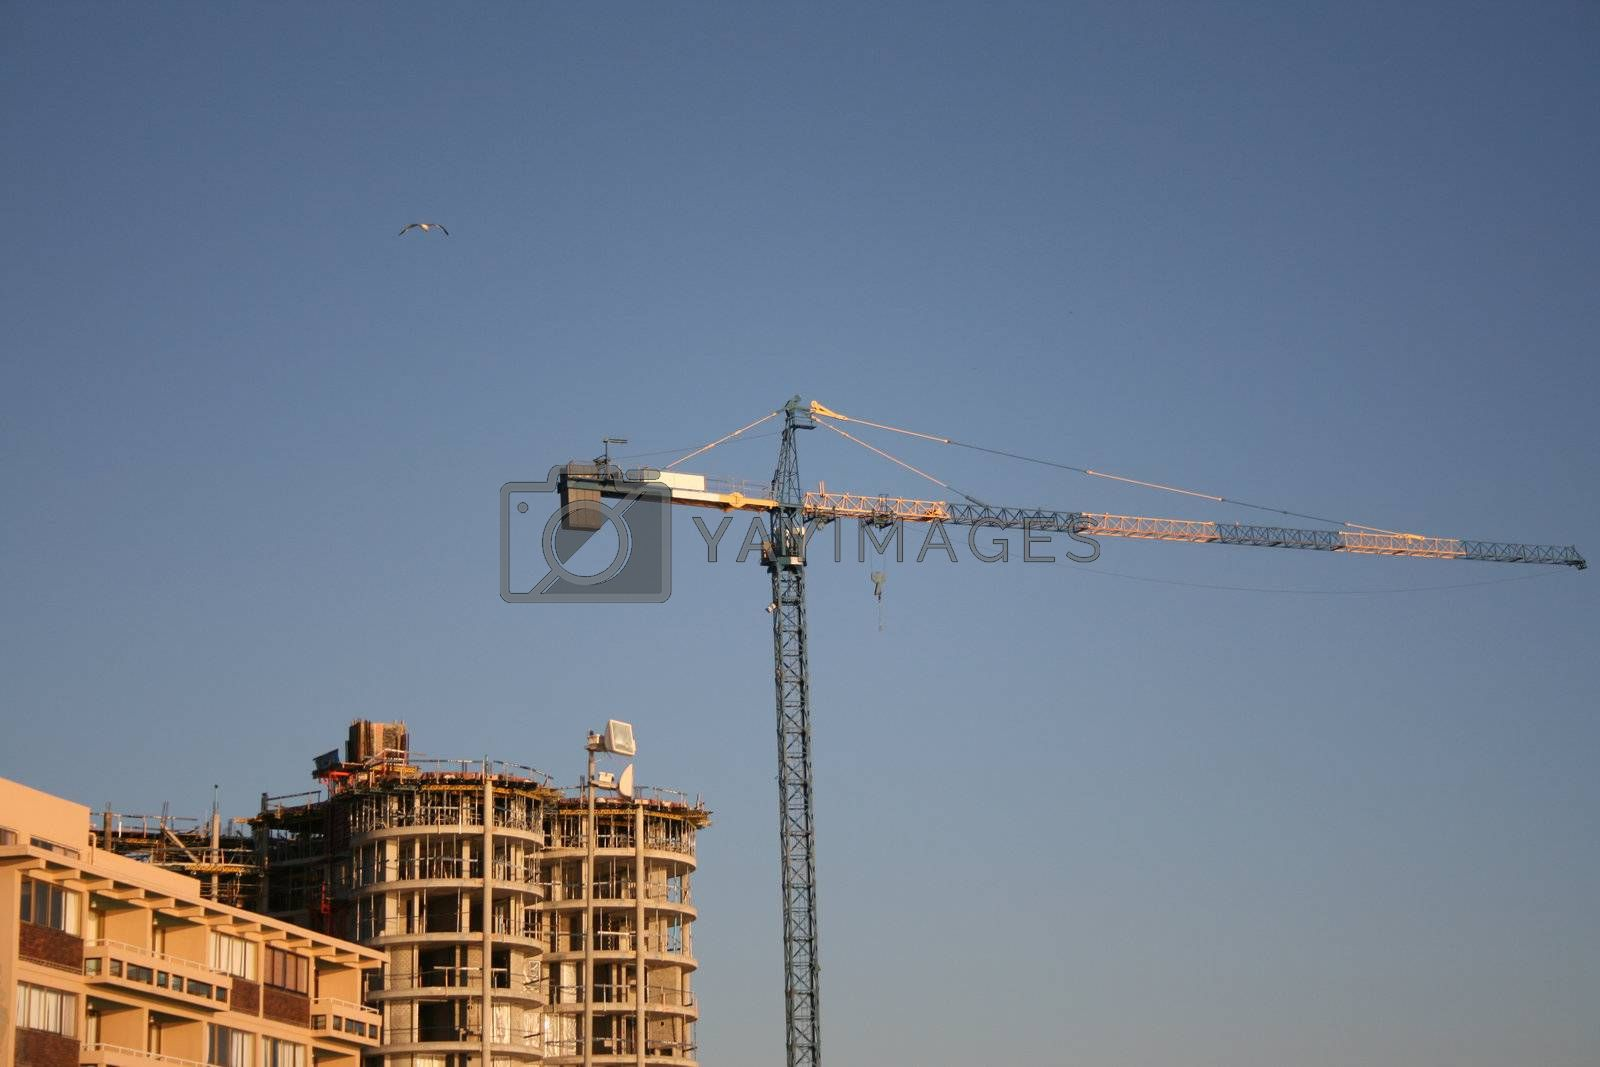 High Crane against a blue sky close to a building site Building Crane behind other buildings with construction to the right